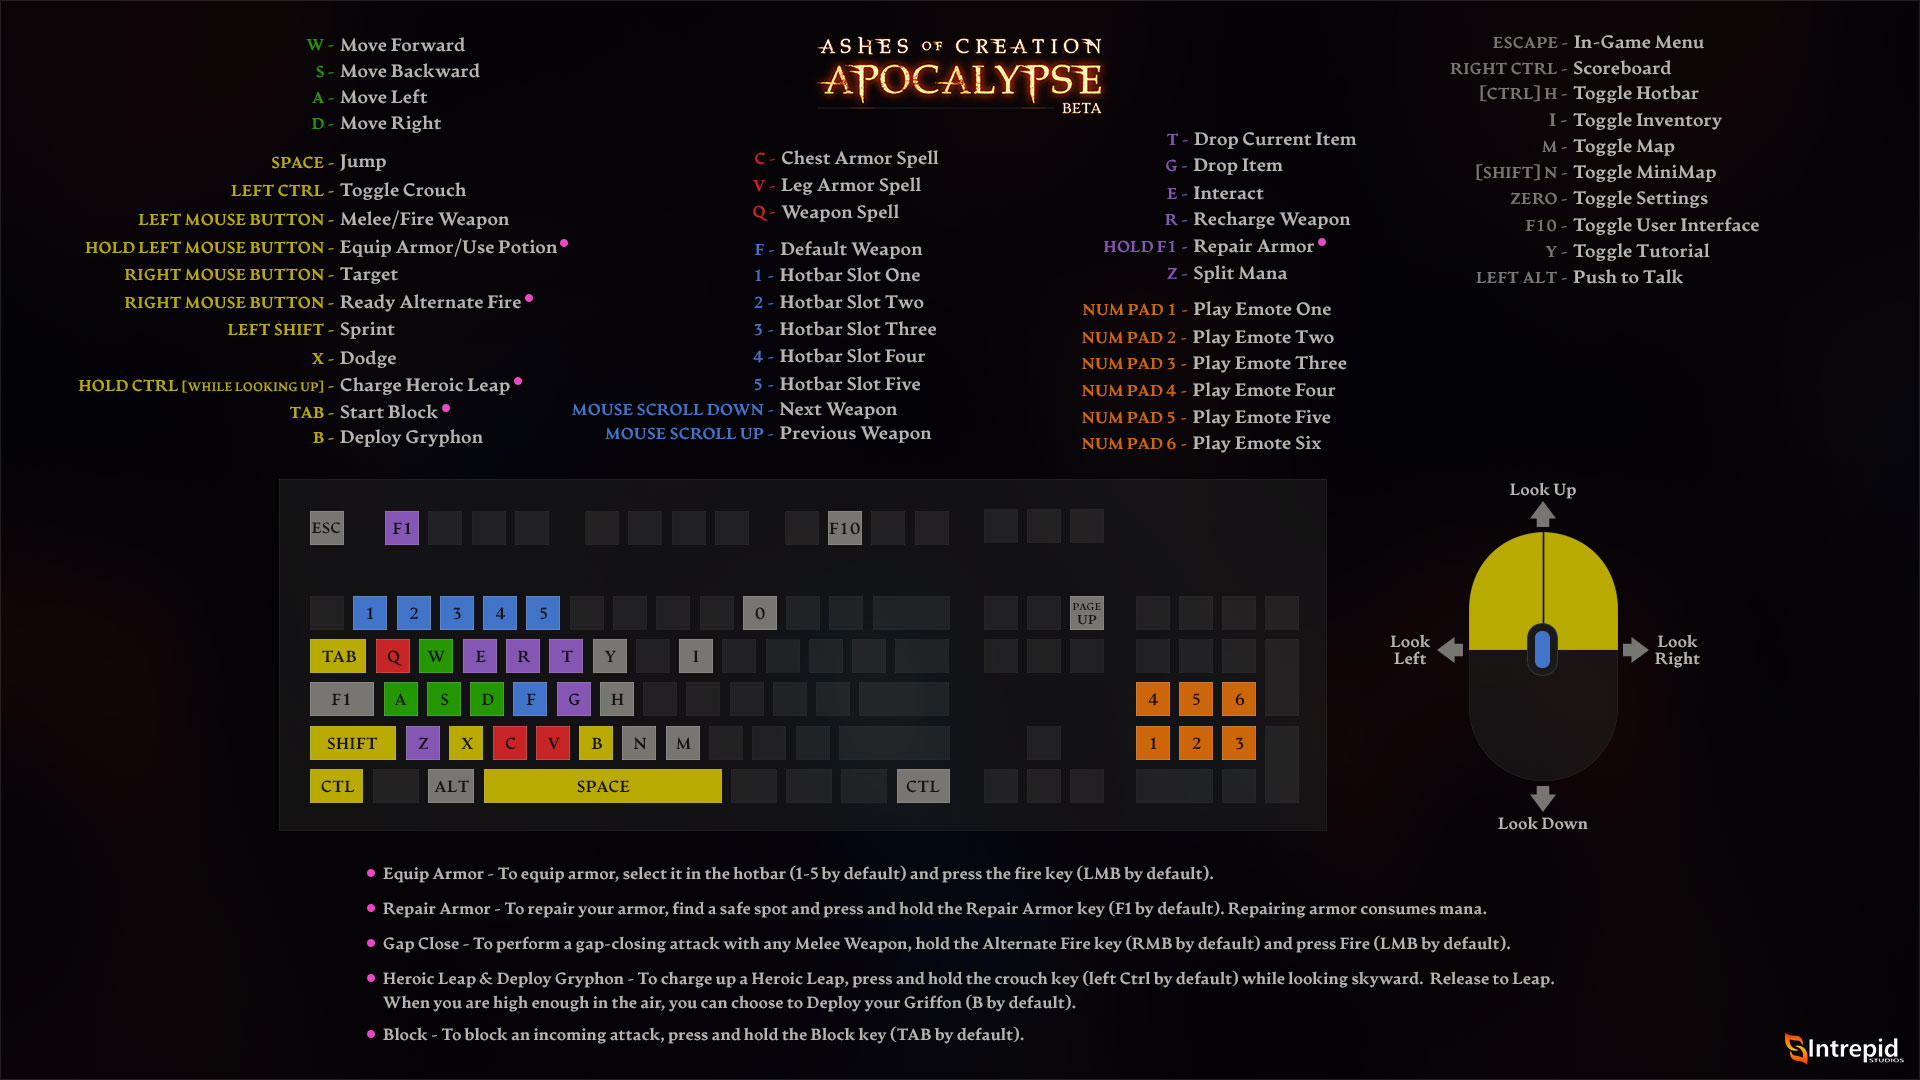 APOC-Keyboard-Shortcuts